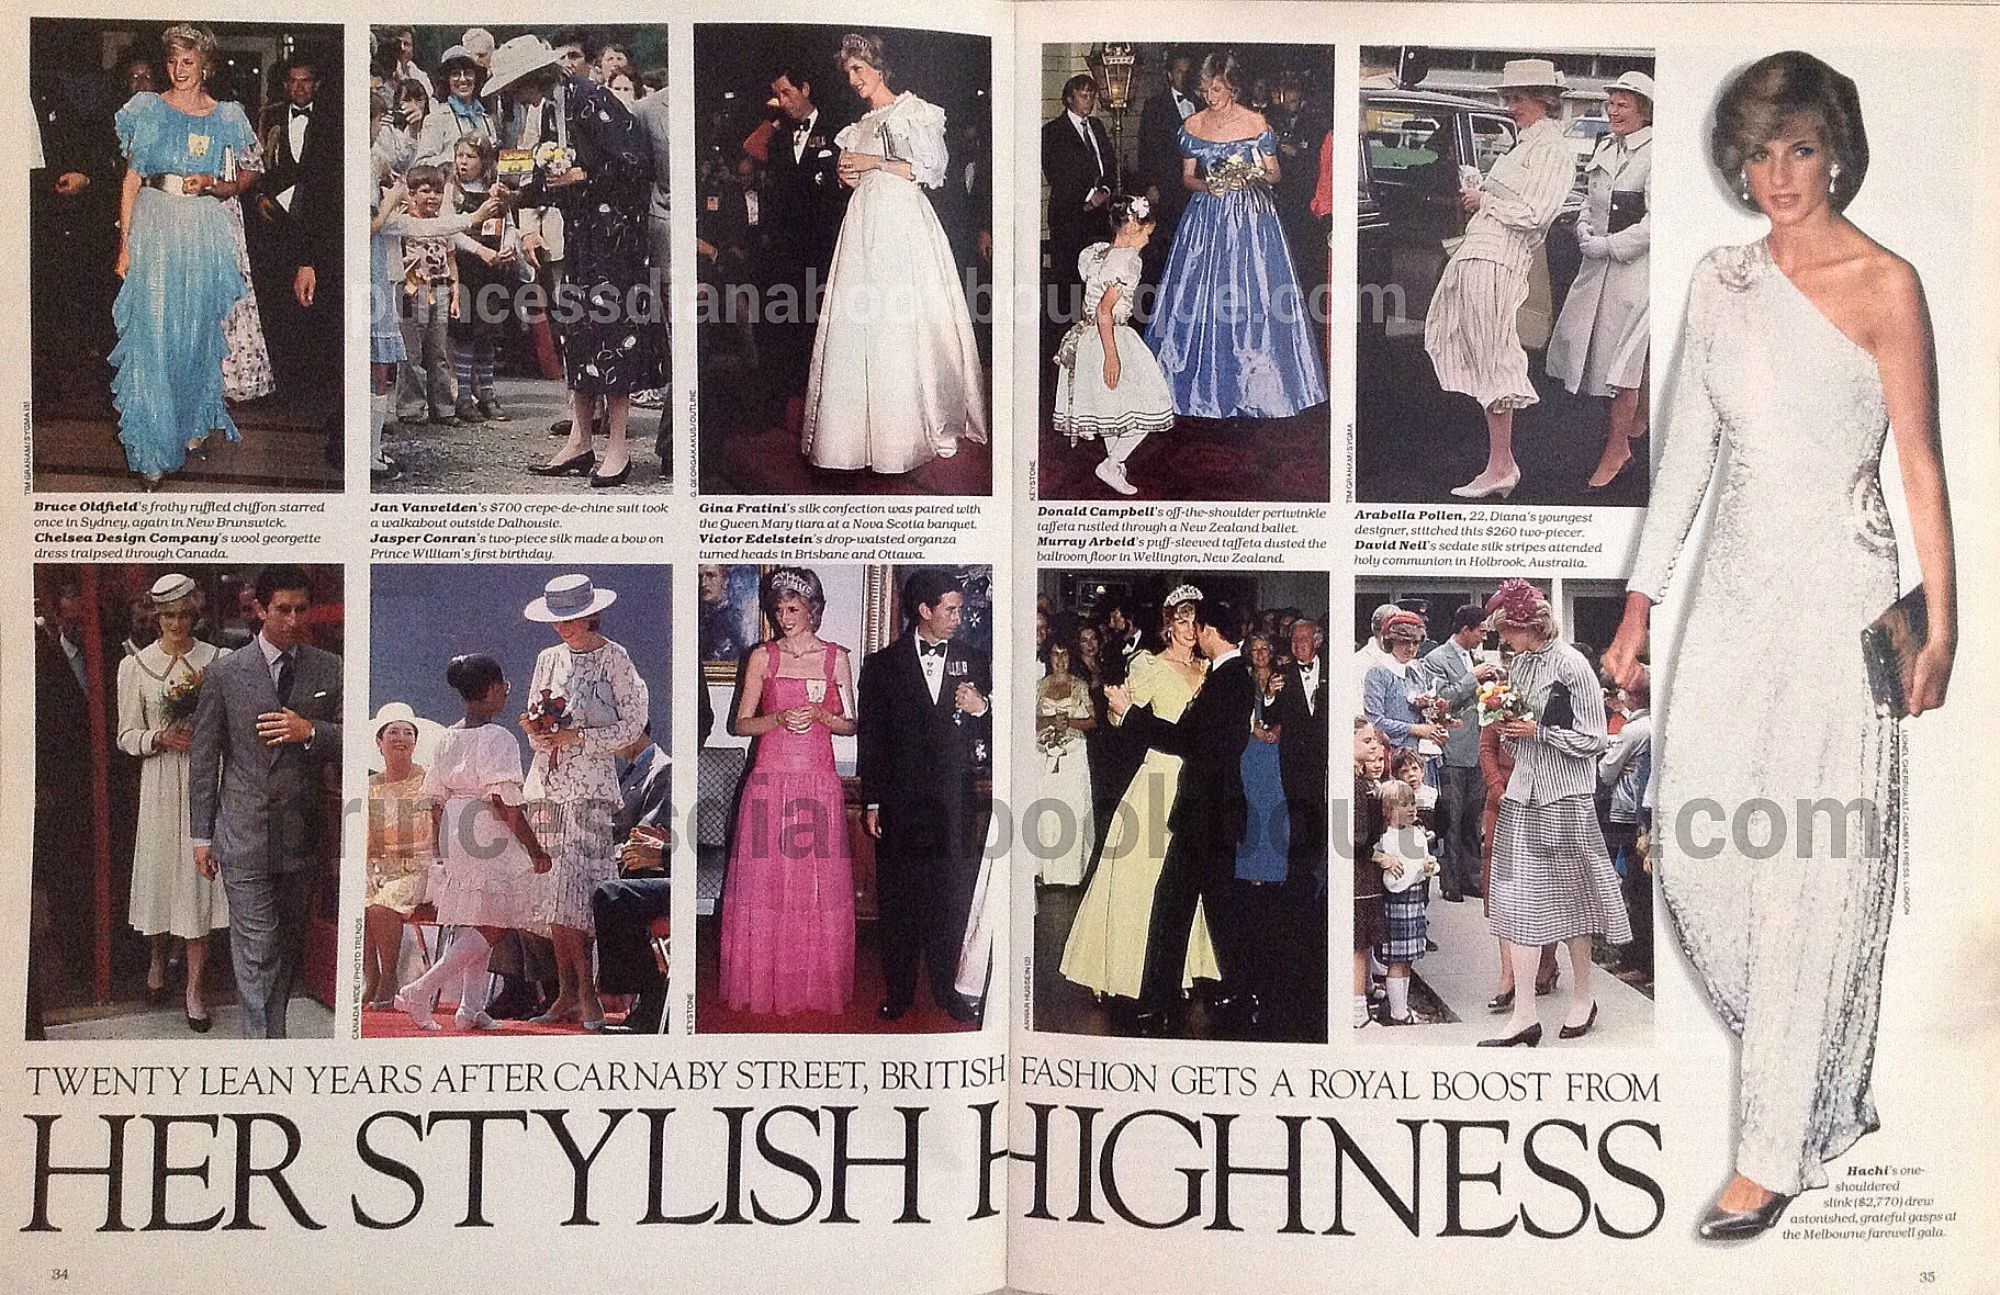 Our Princess Diana Fashion Article Today Her Stylish